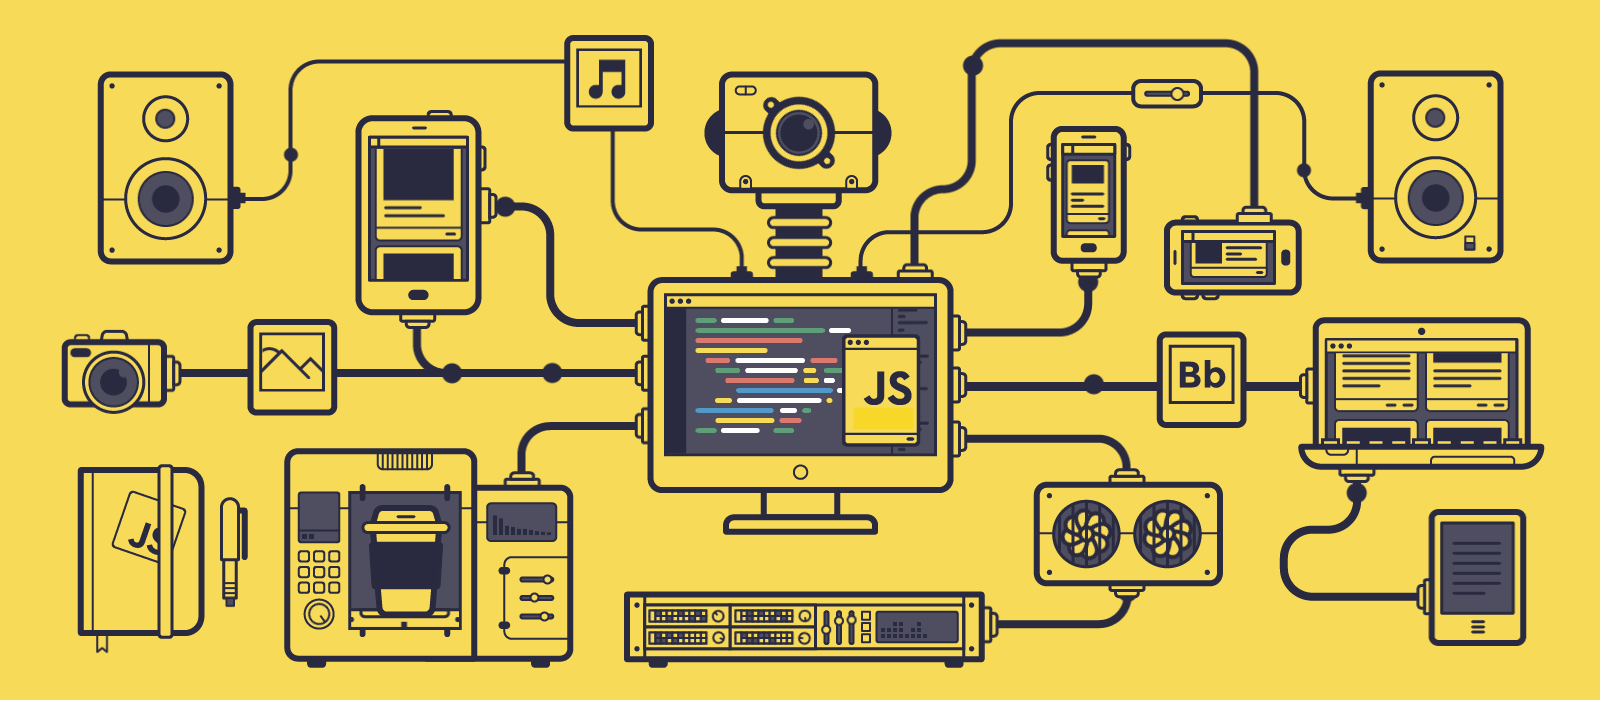 JavaScript working with different devices